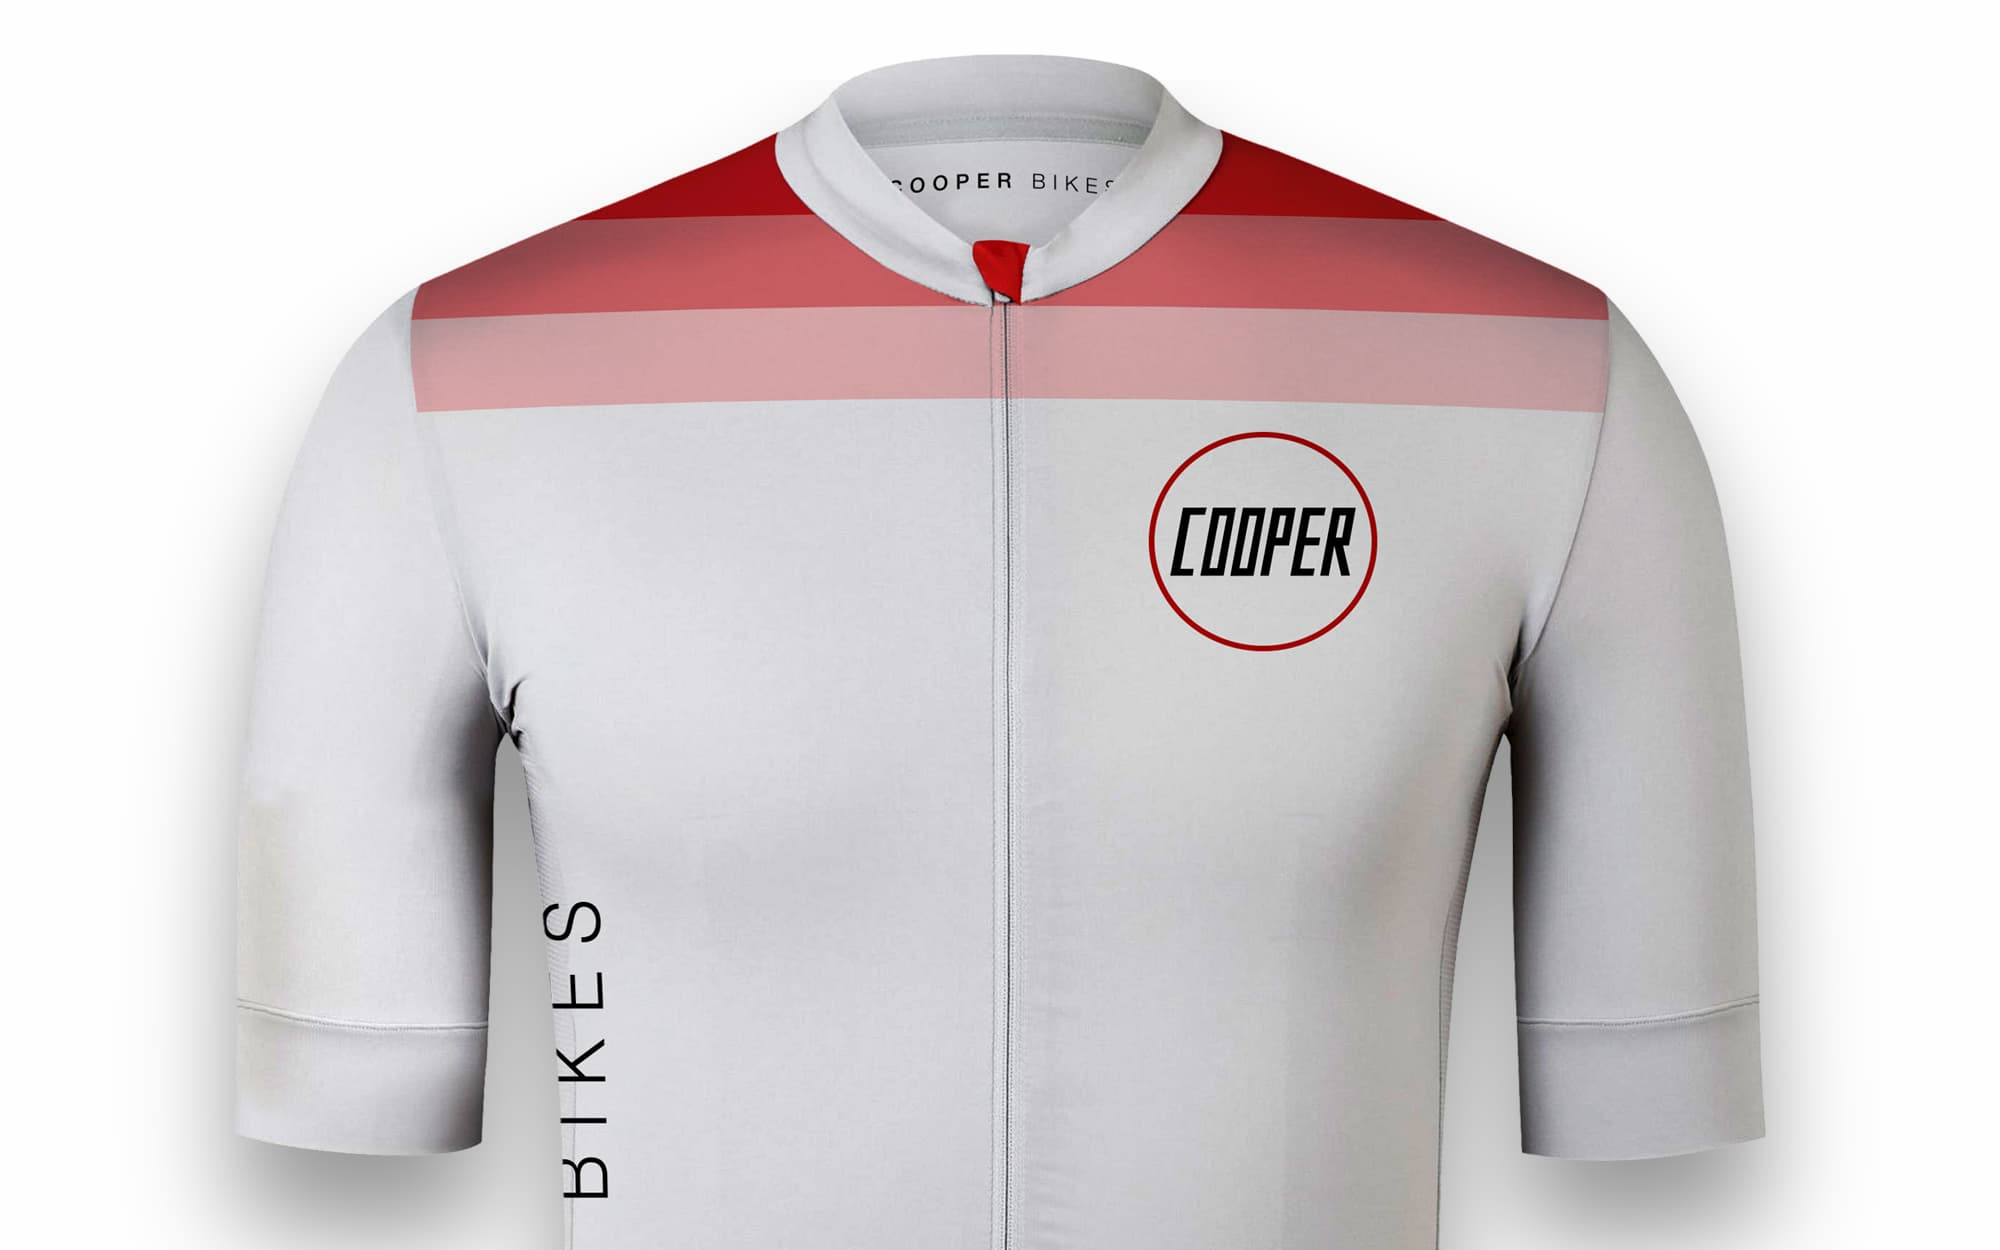 Cooper Bikes - Never Know Defeat